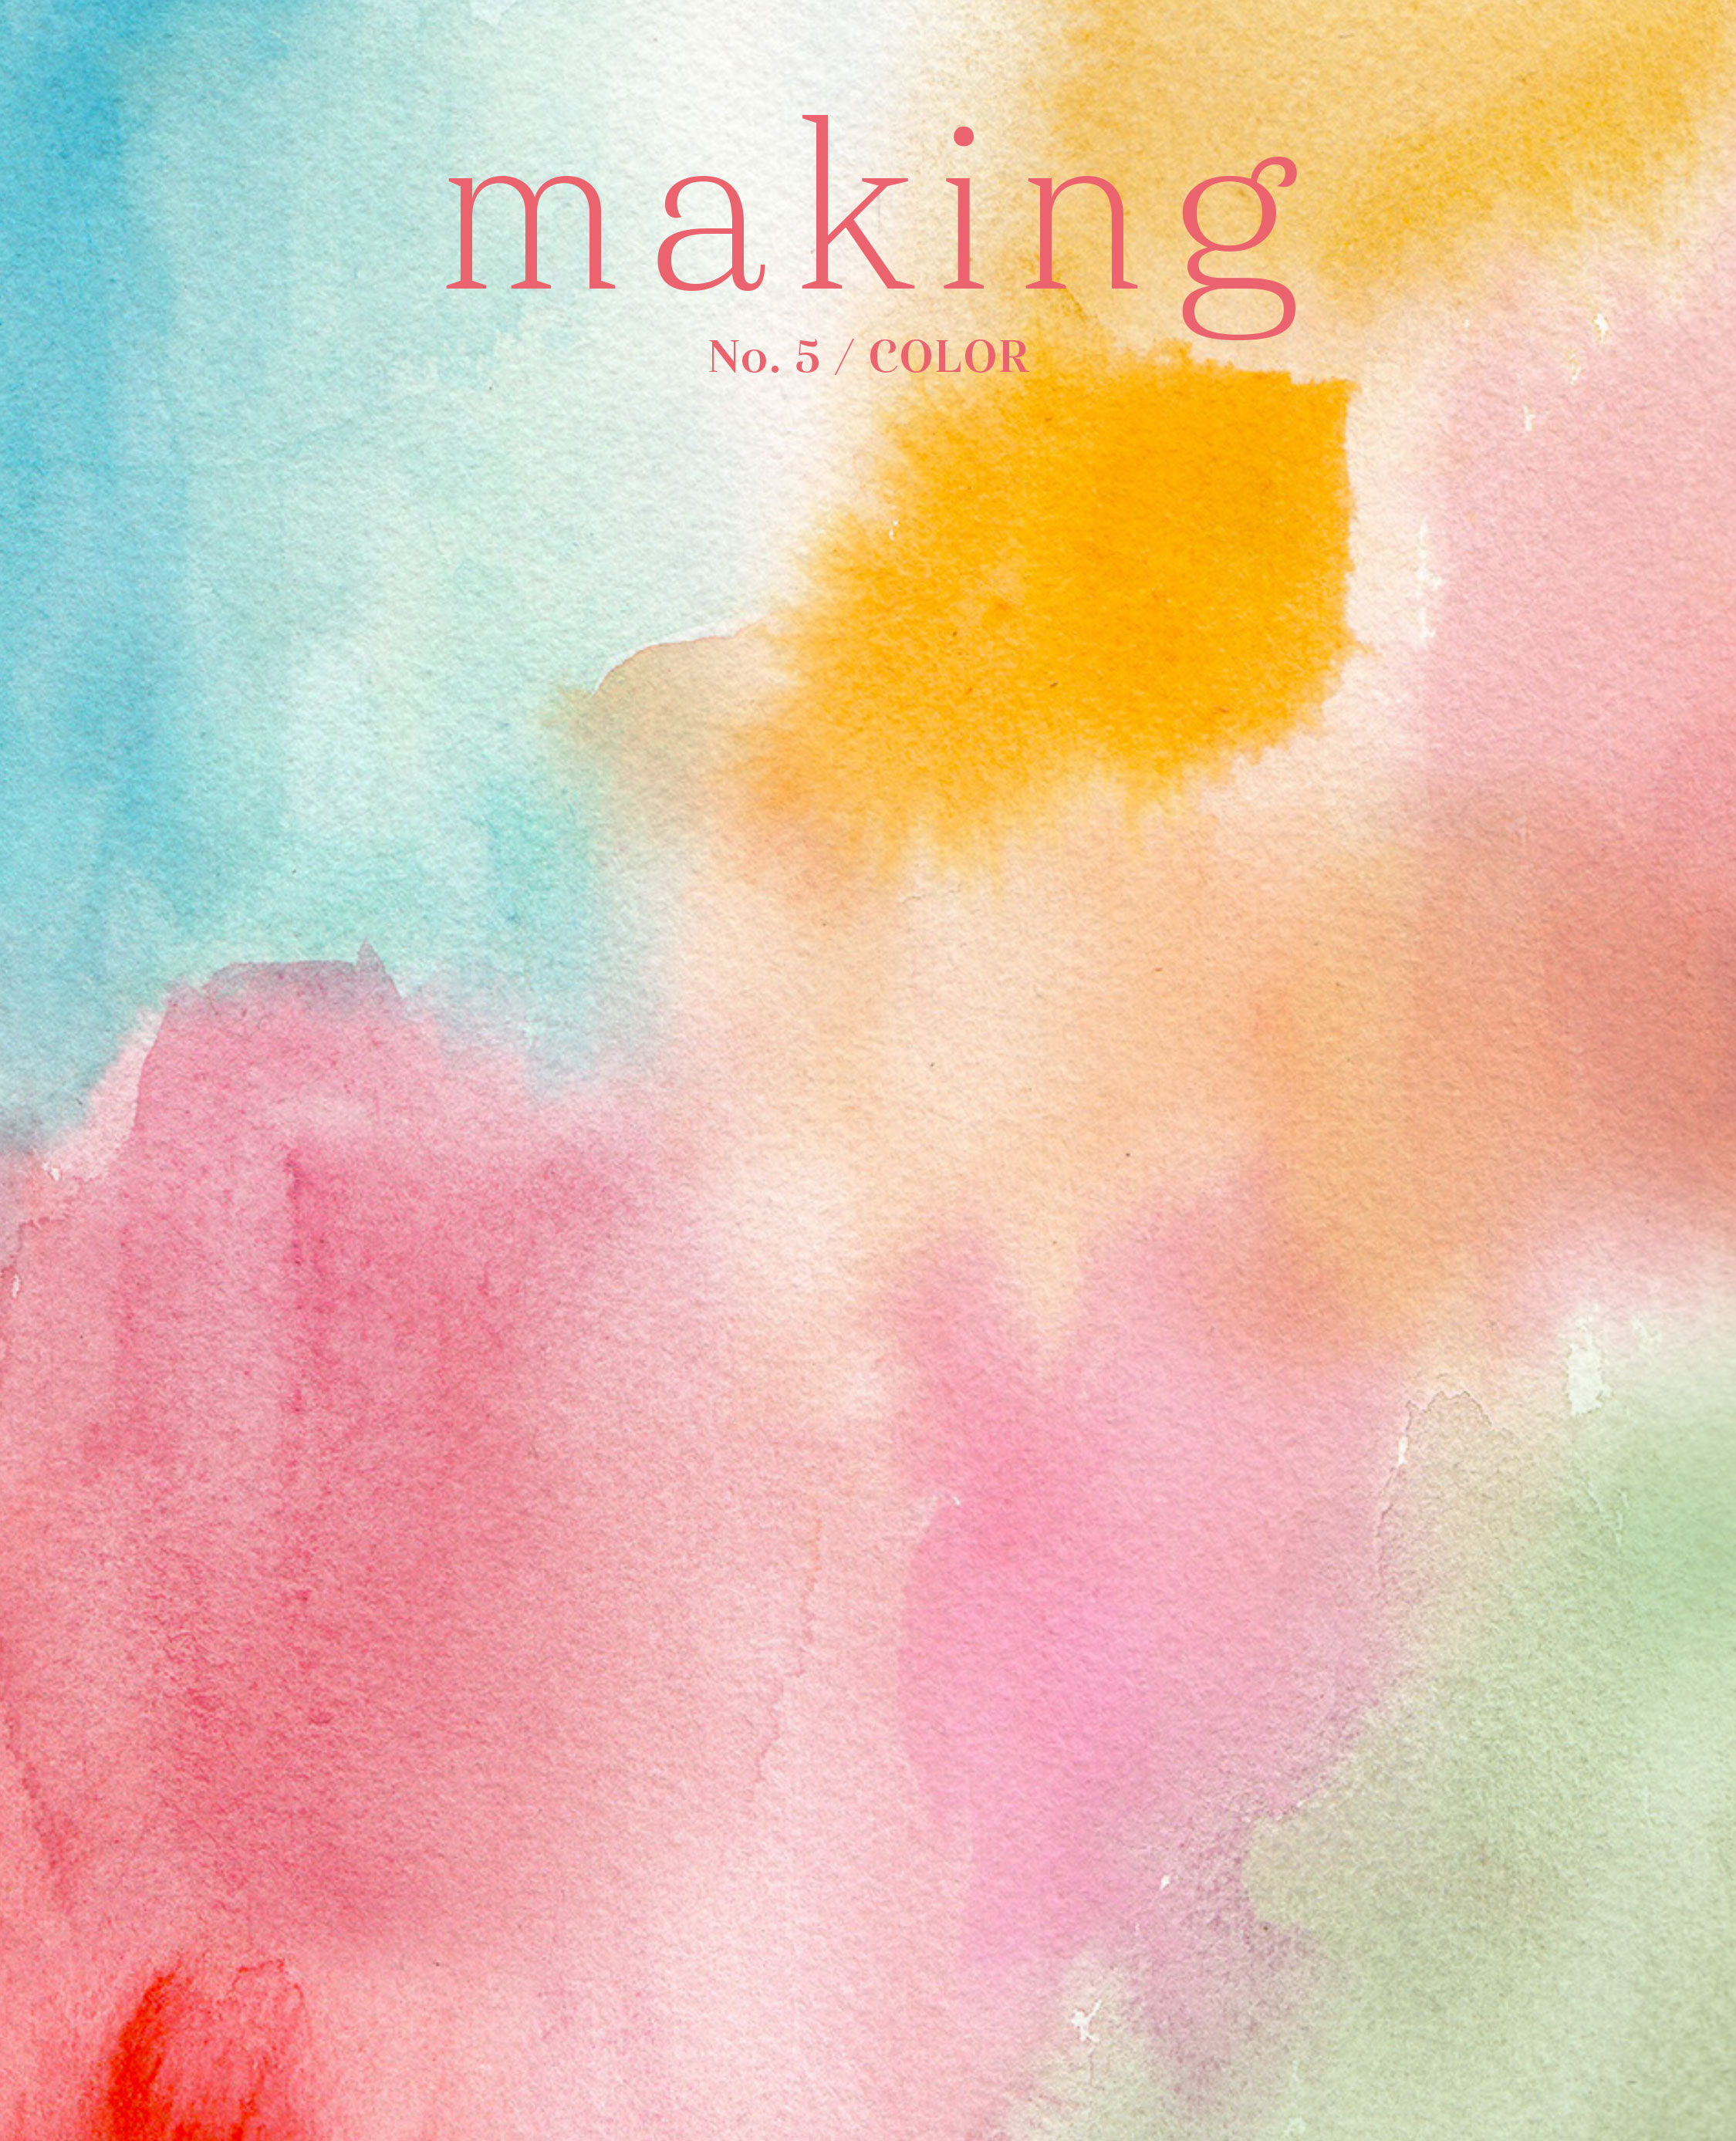 Making No 5 - Colours